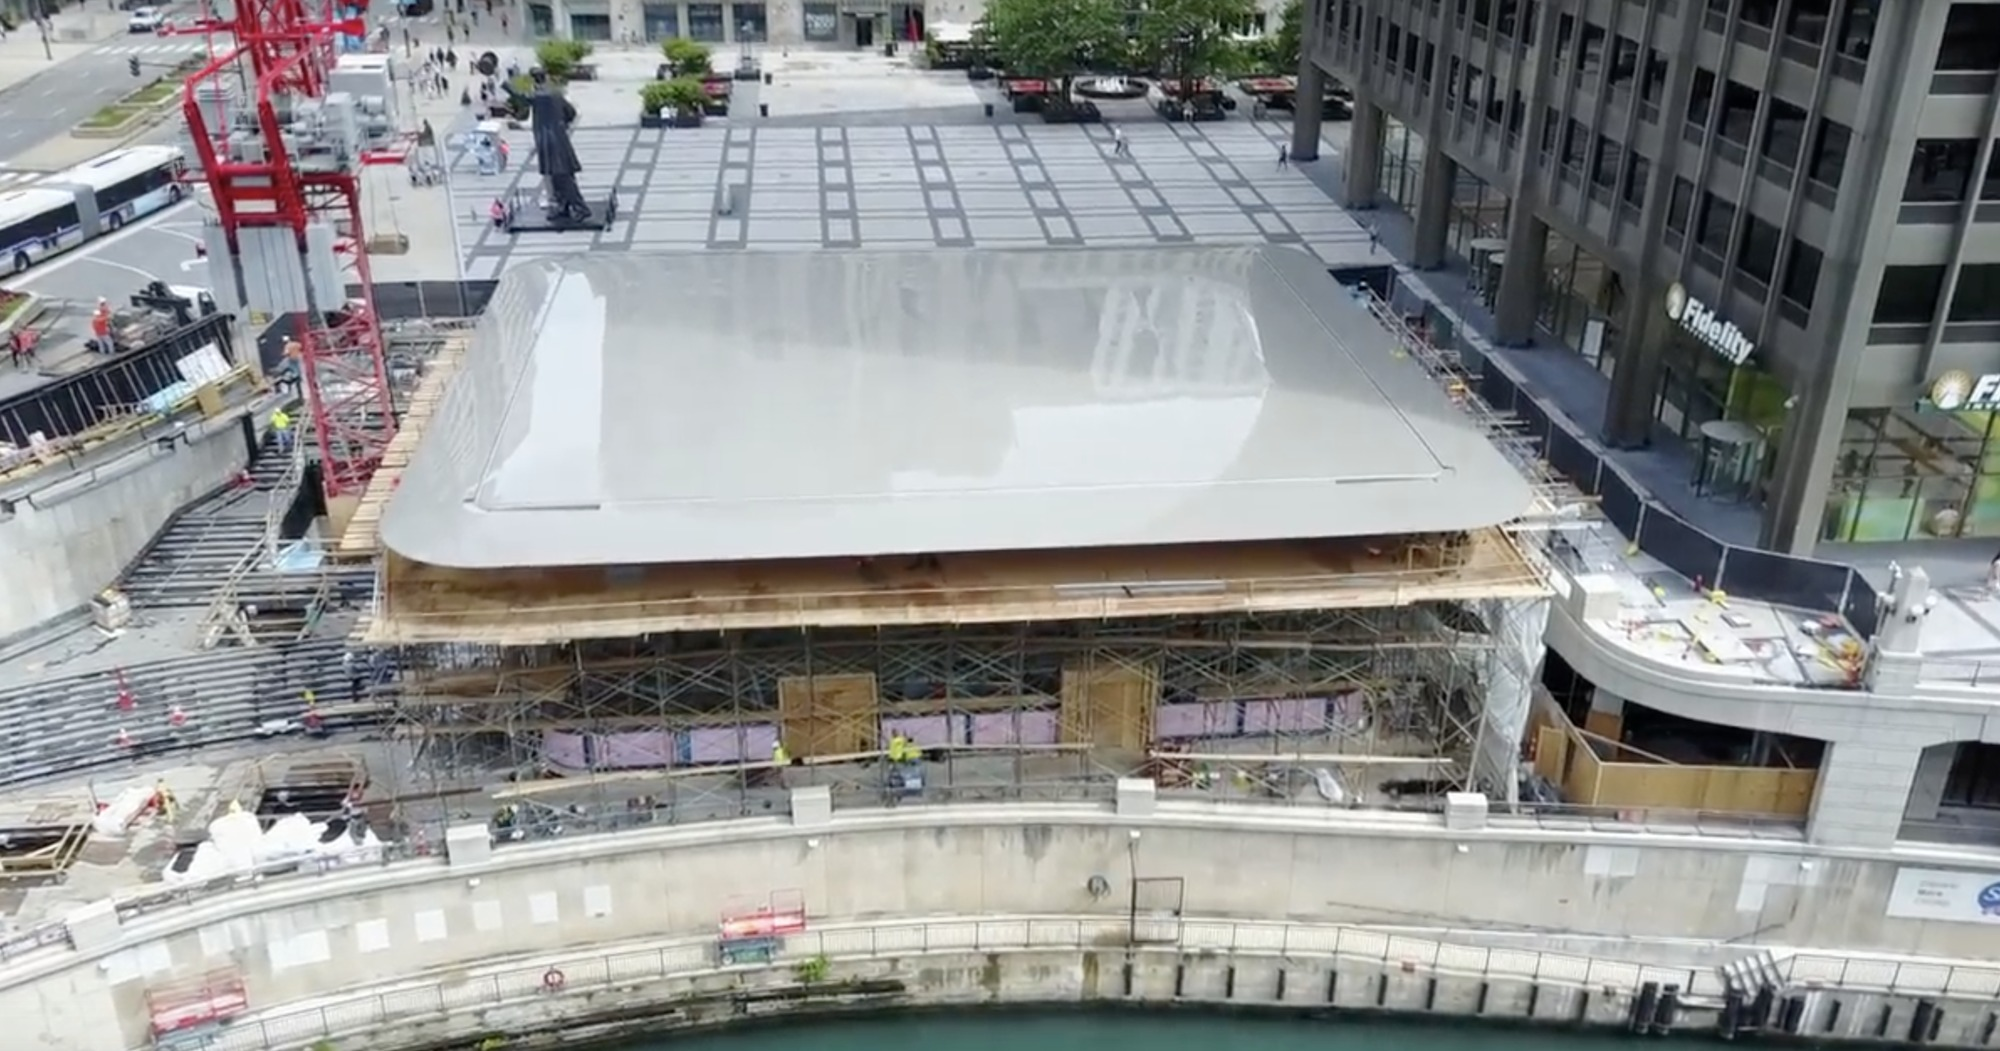 Chicagos New Apple Store Installs Giant MacBook Roof ArchDaily - New apple store in chicago will have a giant macbook as its roof